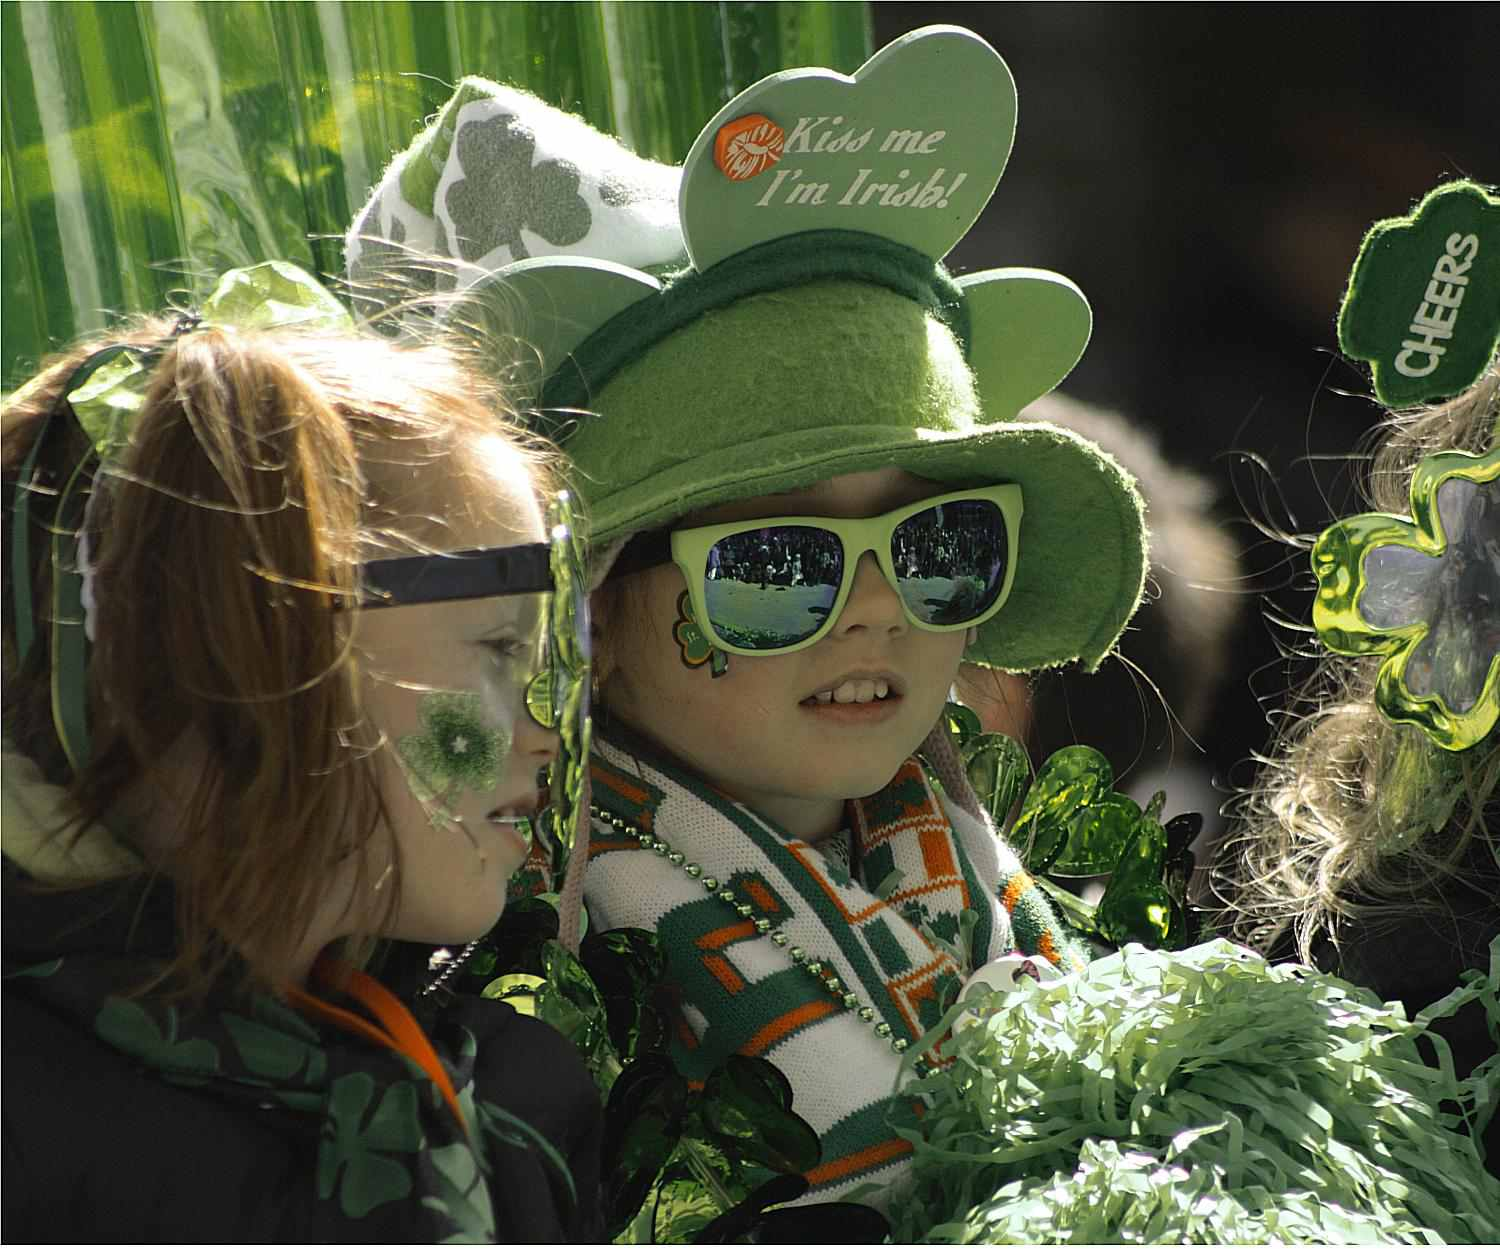 Children watching the St. Patrick's Day Parade, Montreal, Quebec, Canada